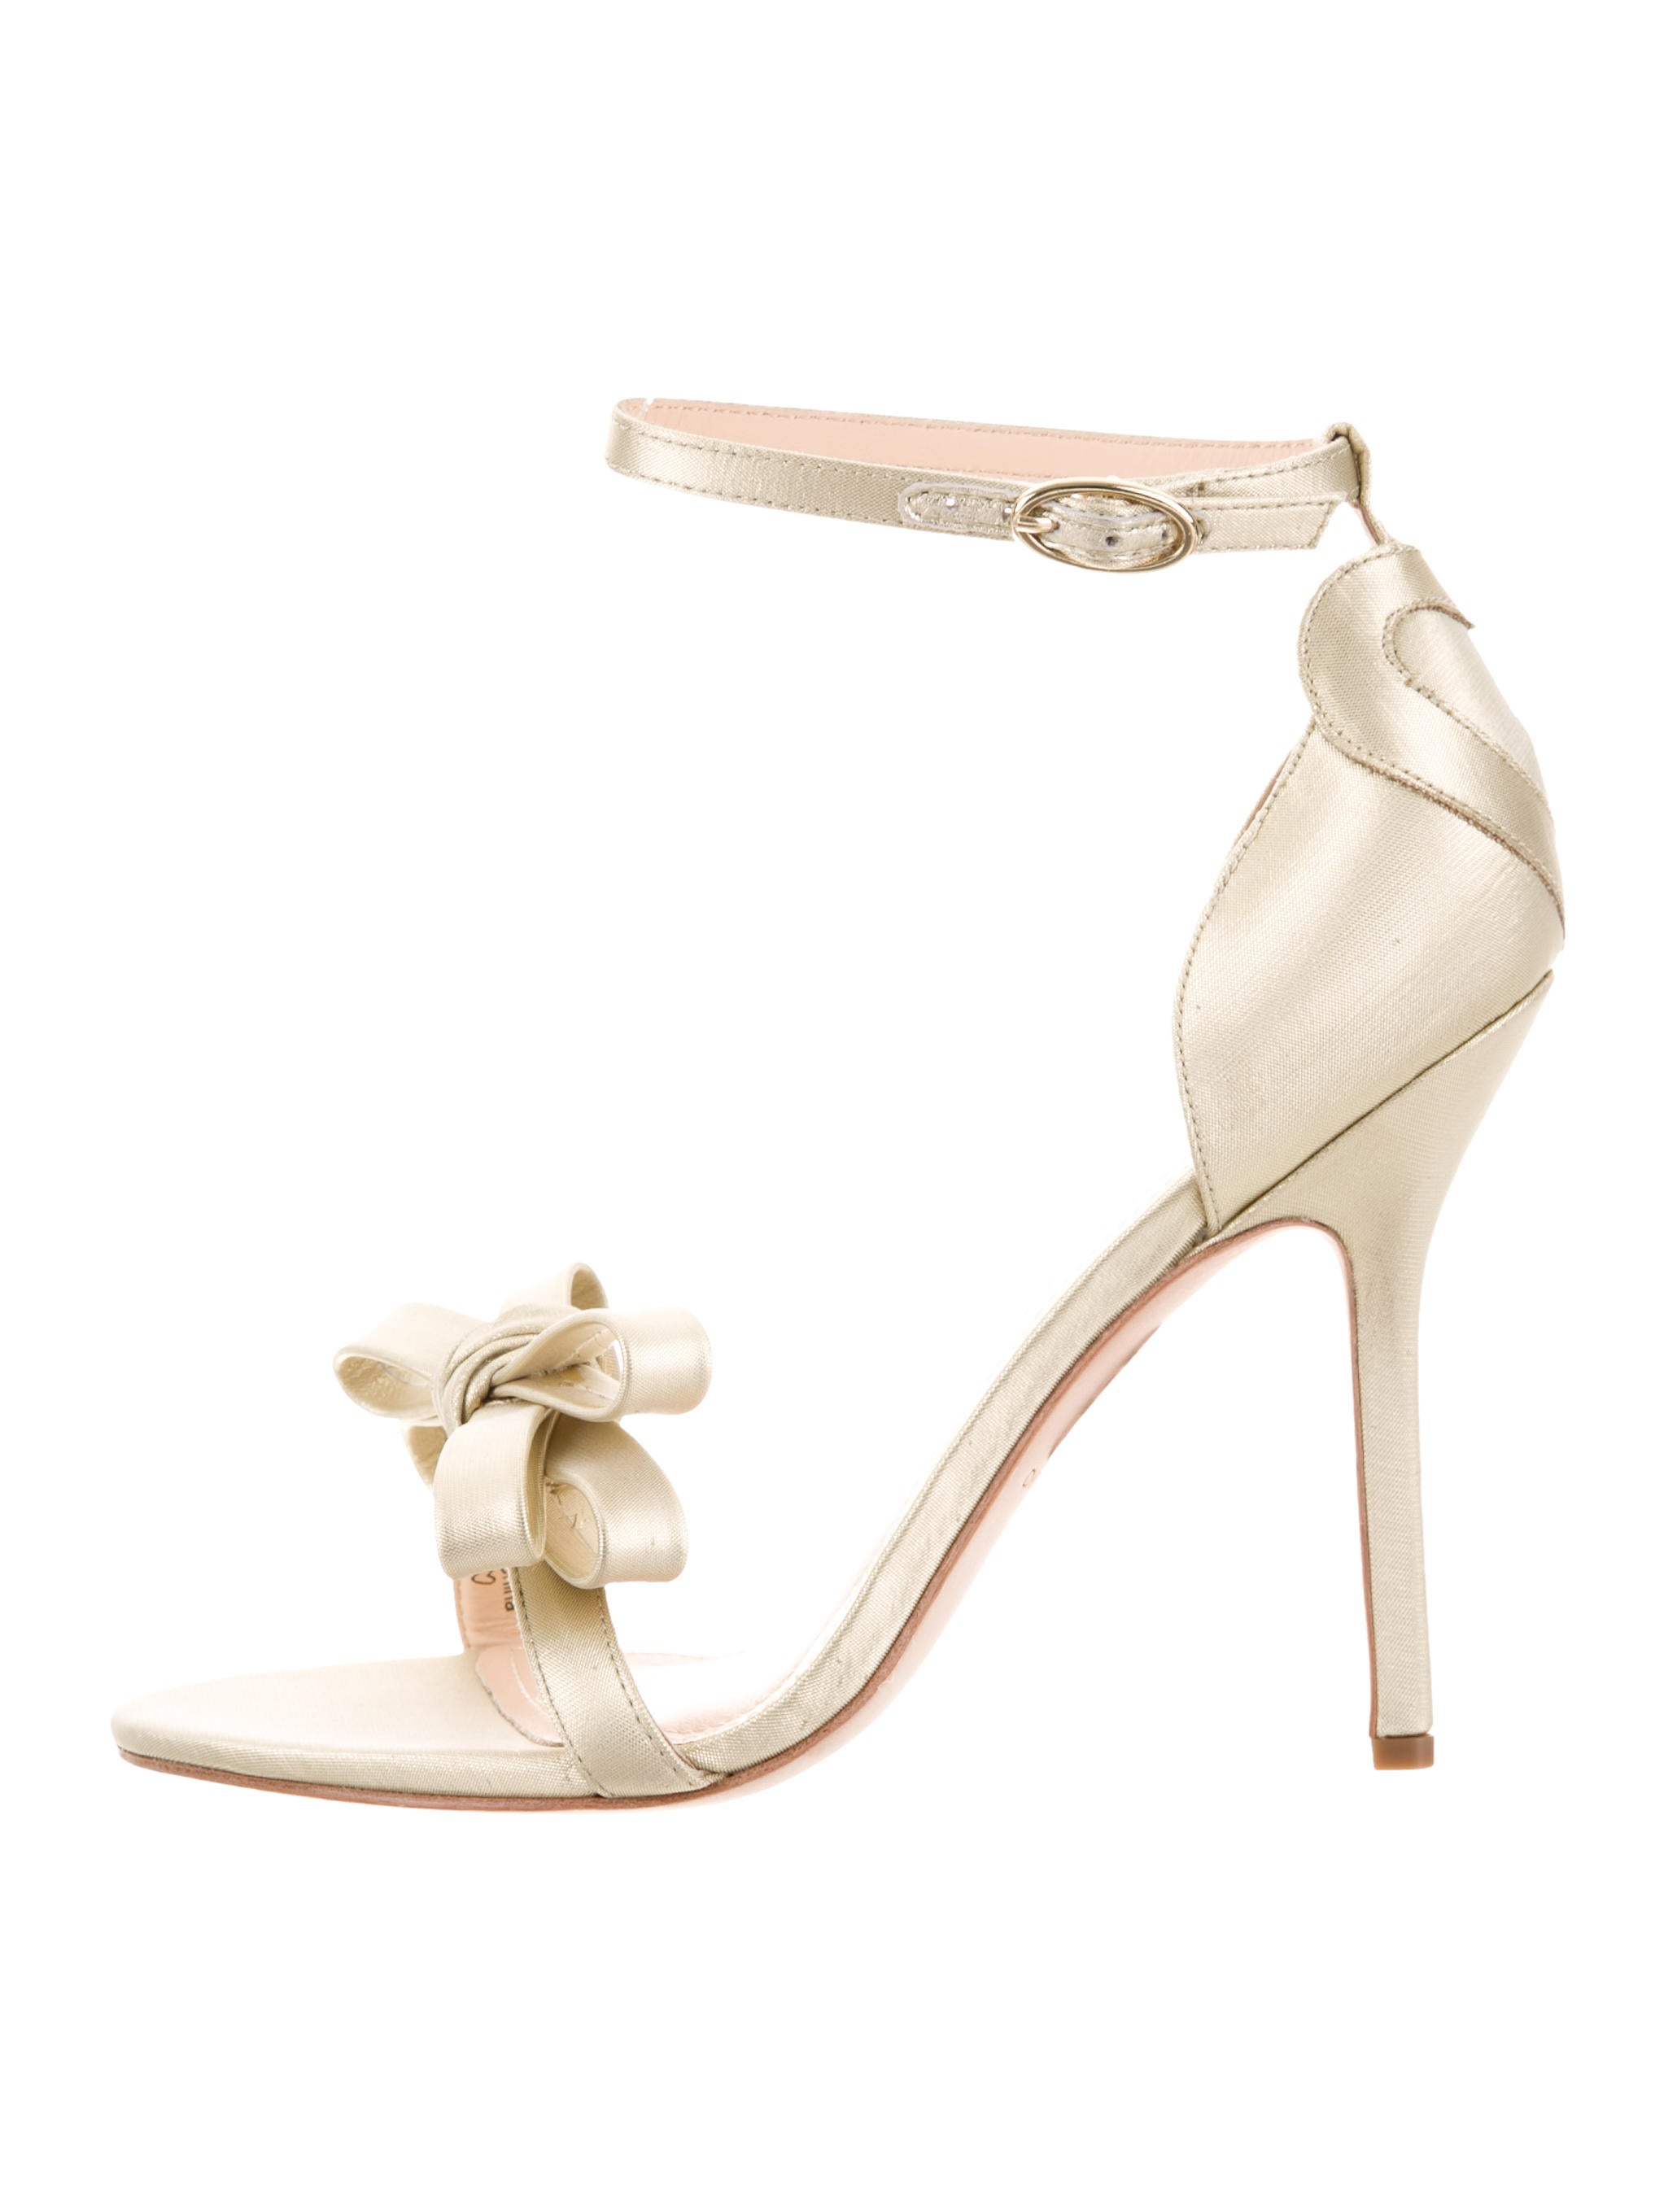 Isa Tapia Bow-Accented Ankle Strap Sandals sale explore cheap purchase iQvdqyqGL